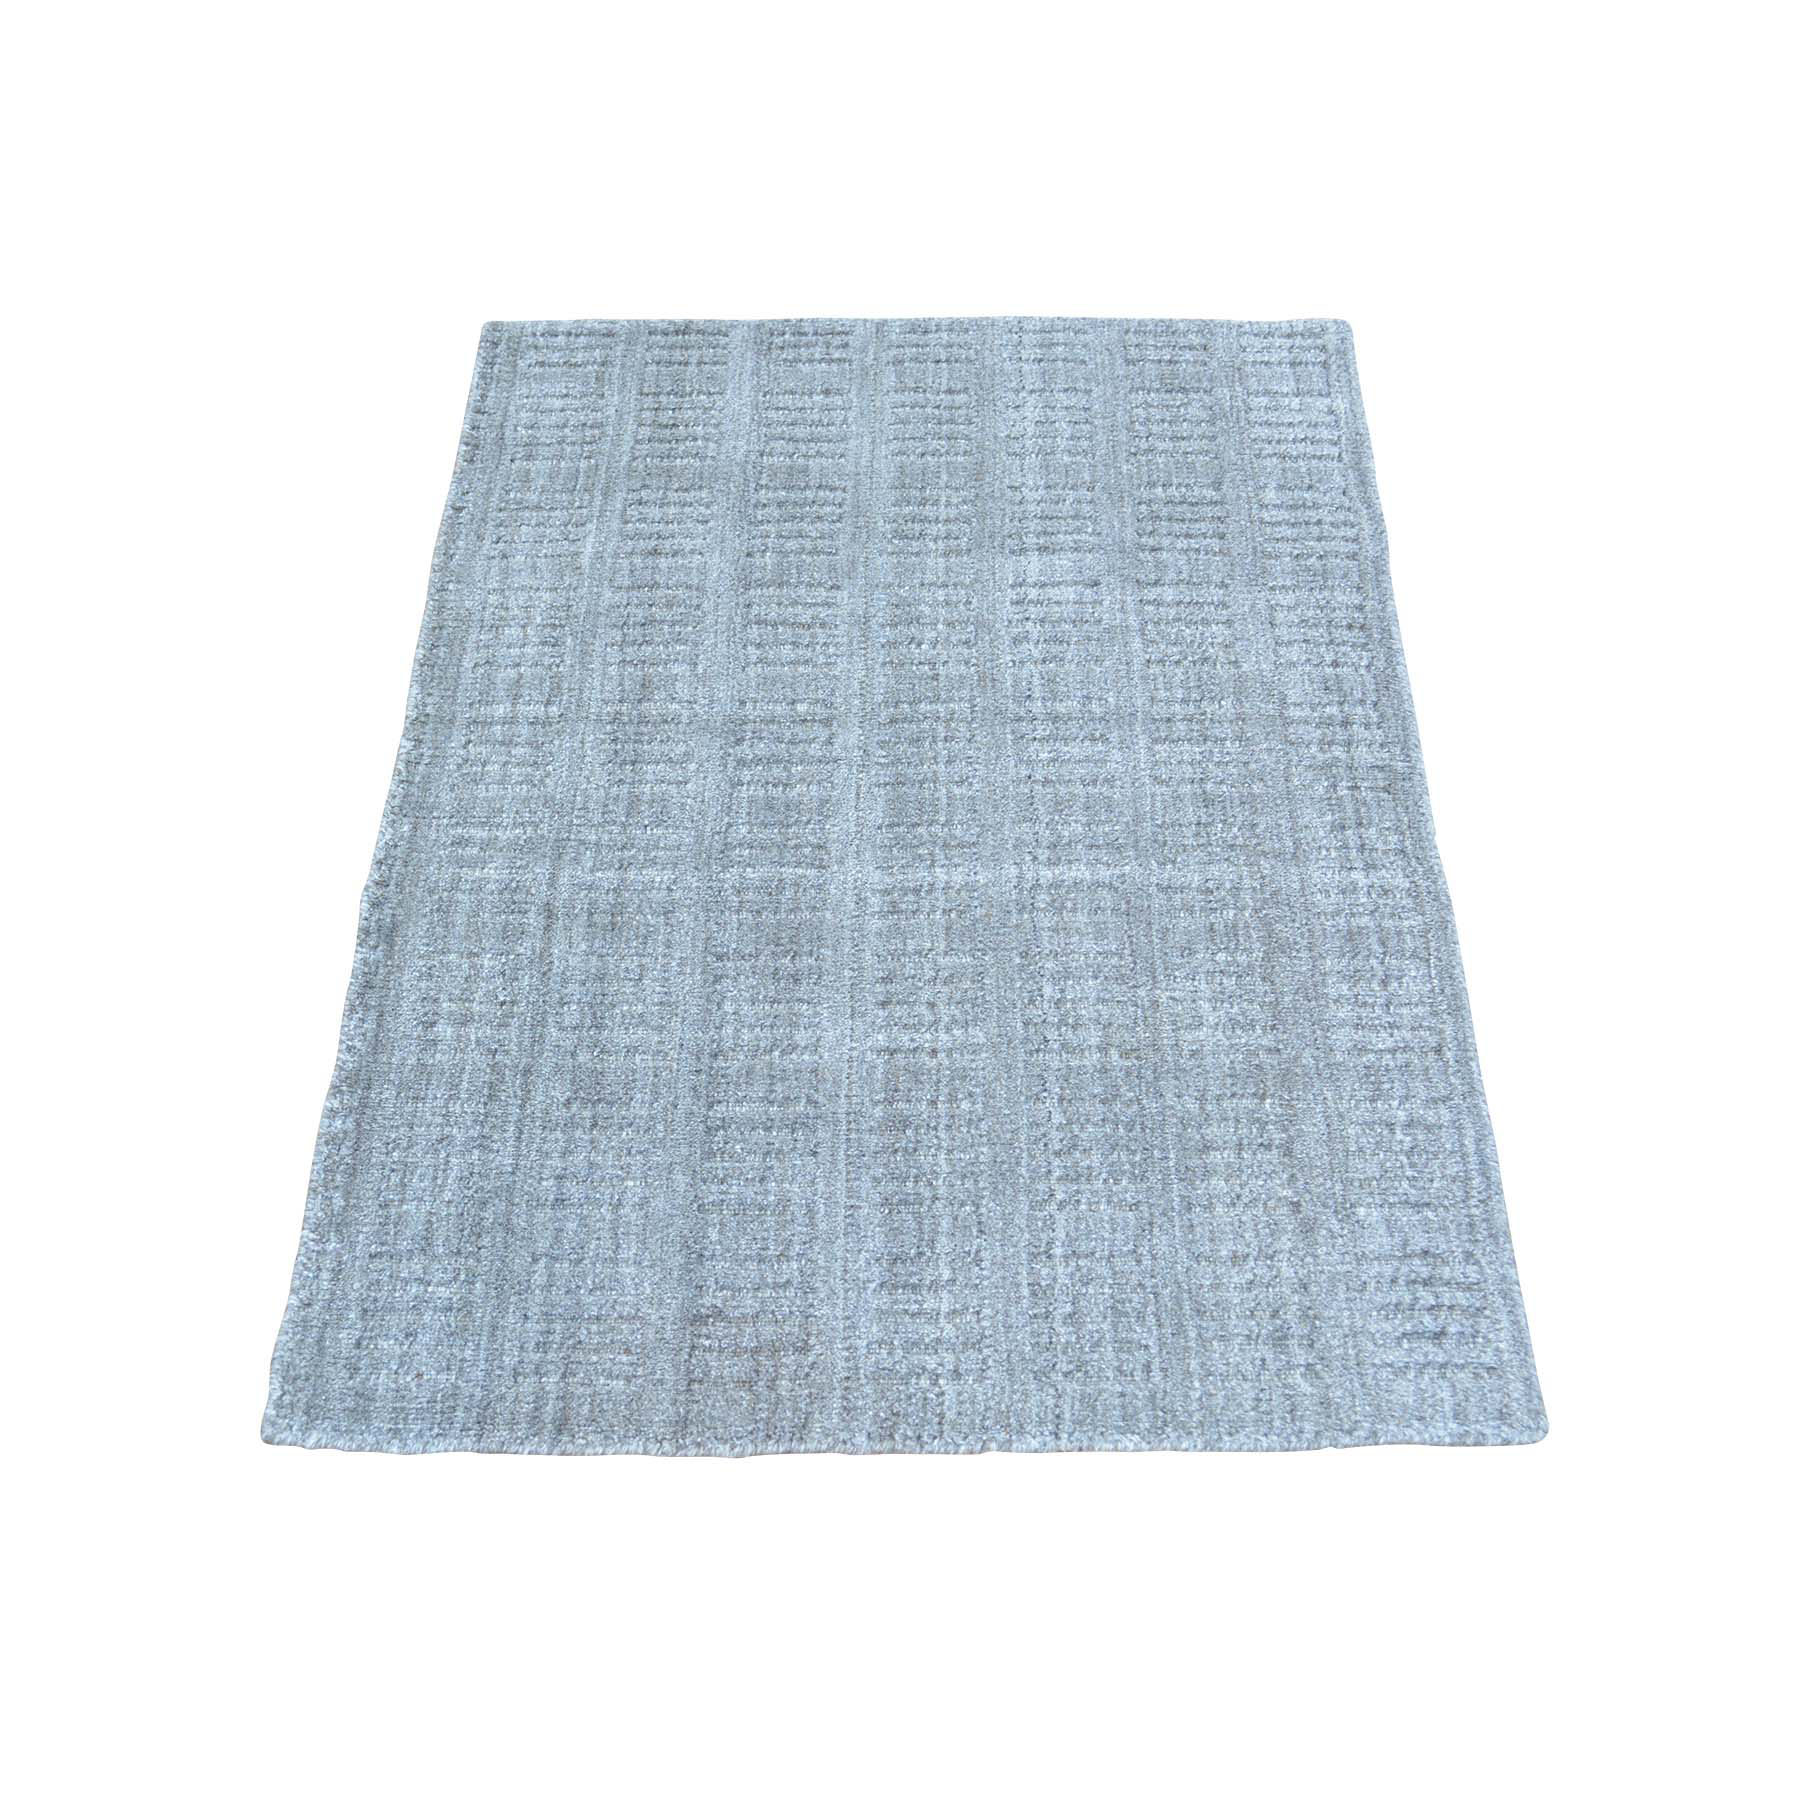 2'X3' Tone On Tone Hand Loomed Grey Wool And Silk Rug moab99e6